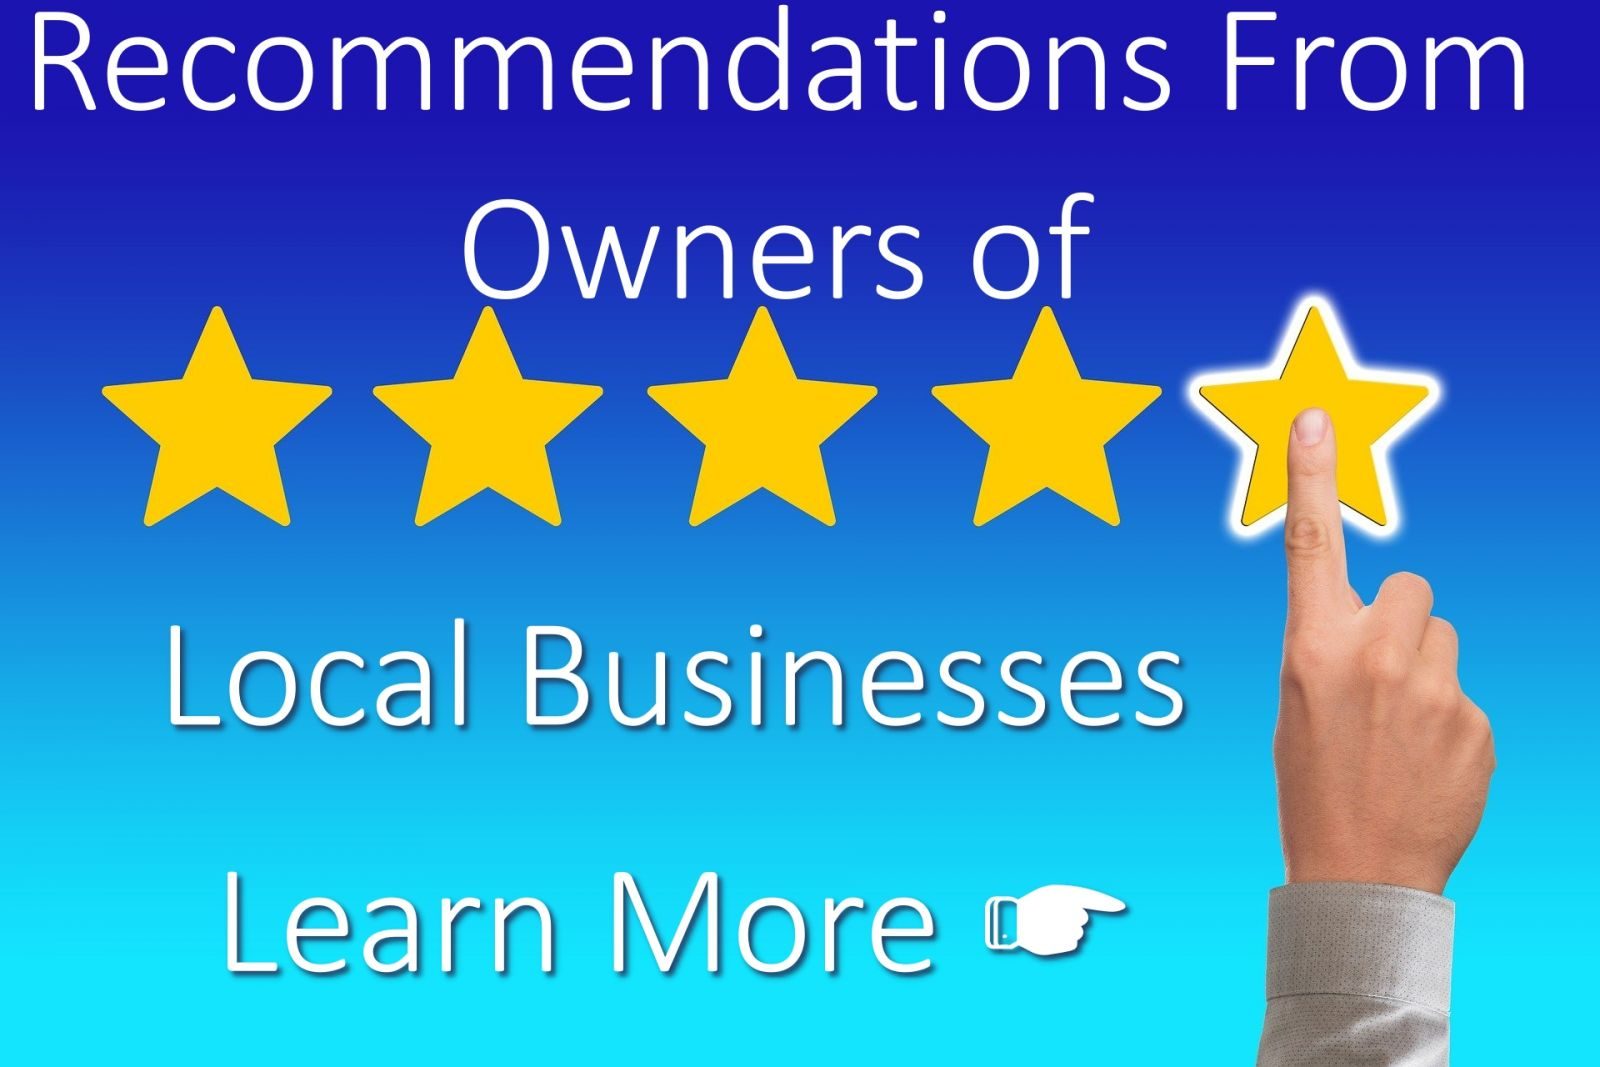 Reviews & Recommendations from Local Business Owners